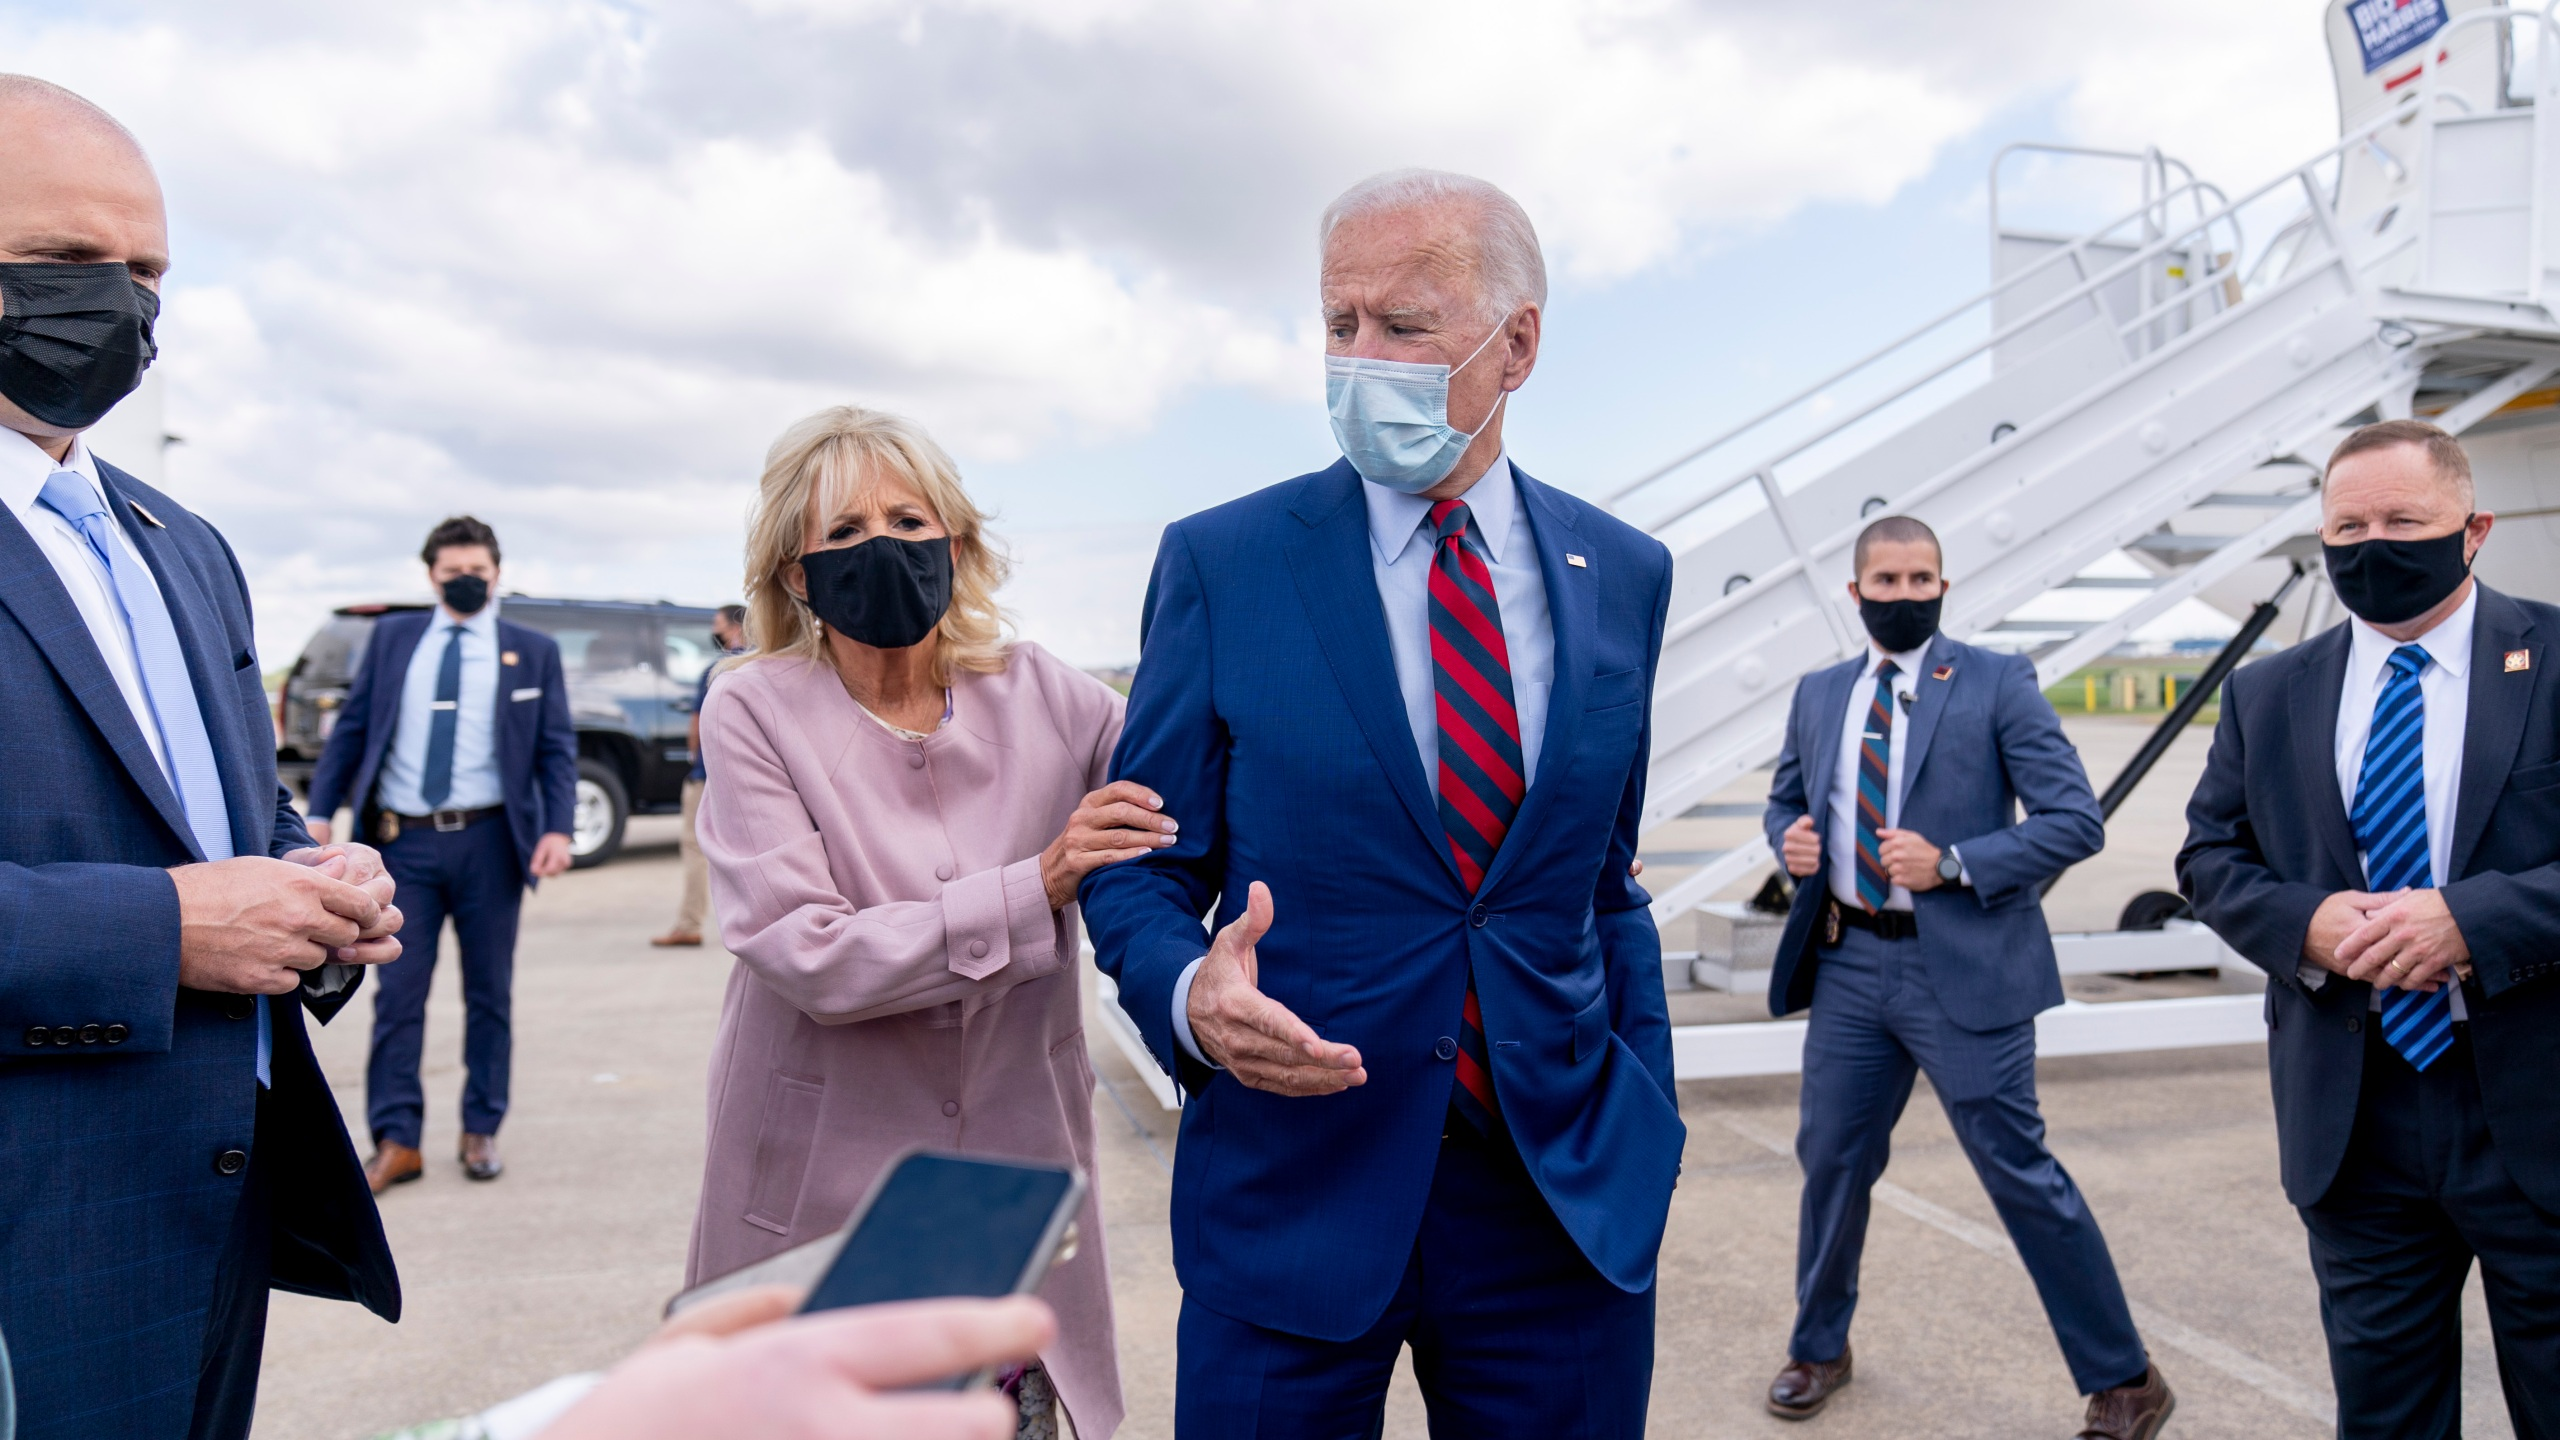 Jill Biden moves her husband, Democratic presidential candidate former Vice President Joe Biden, back from members of the media as he speaks outside his campaign plane at New Castle Airport in New Castle, Del., Monday, Oct. 5, 2020, to travel to Miami for campaign events. (AP Photo/Andrew Harnik)